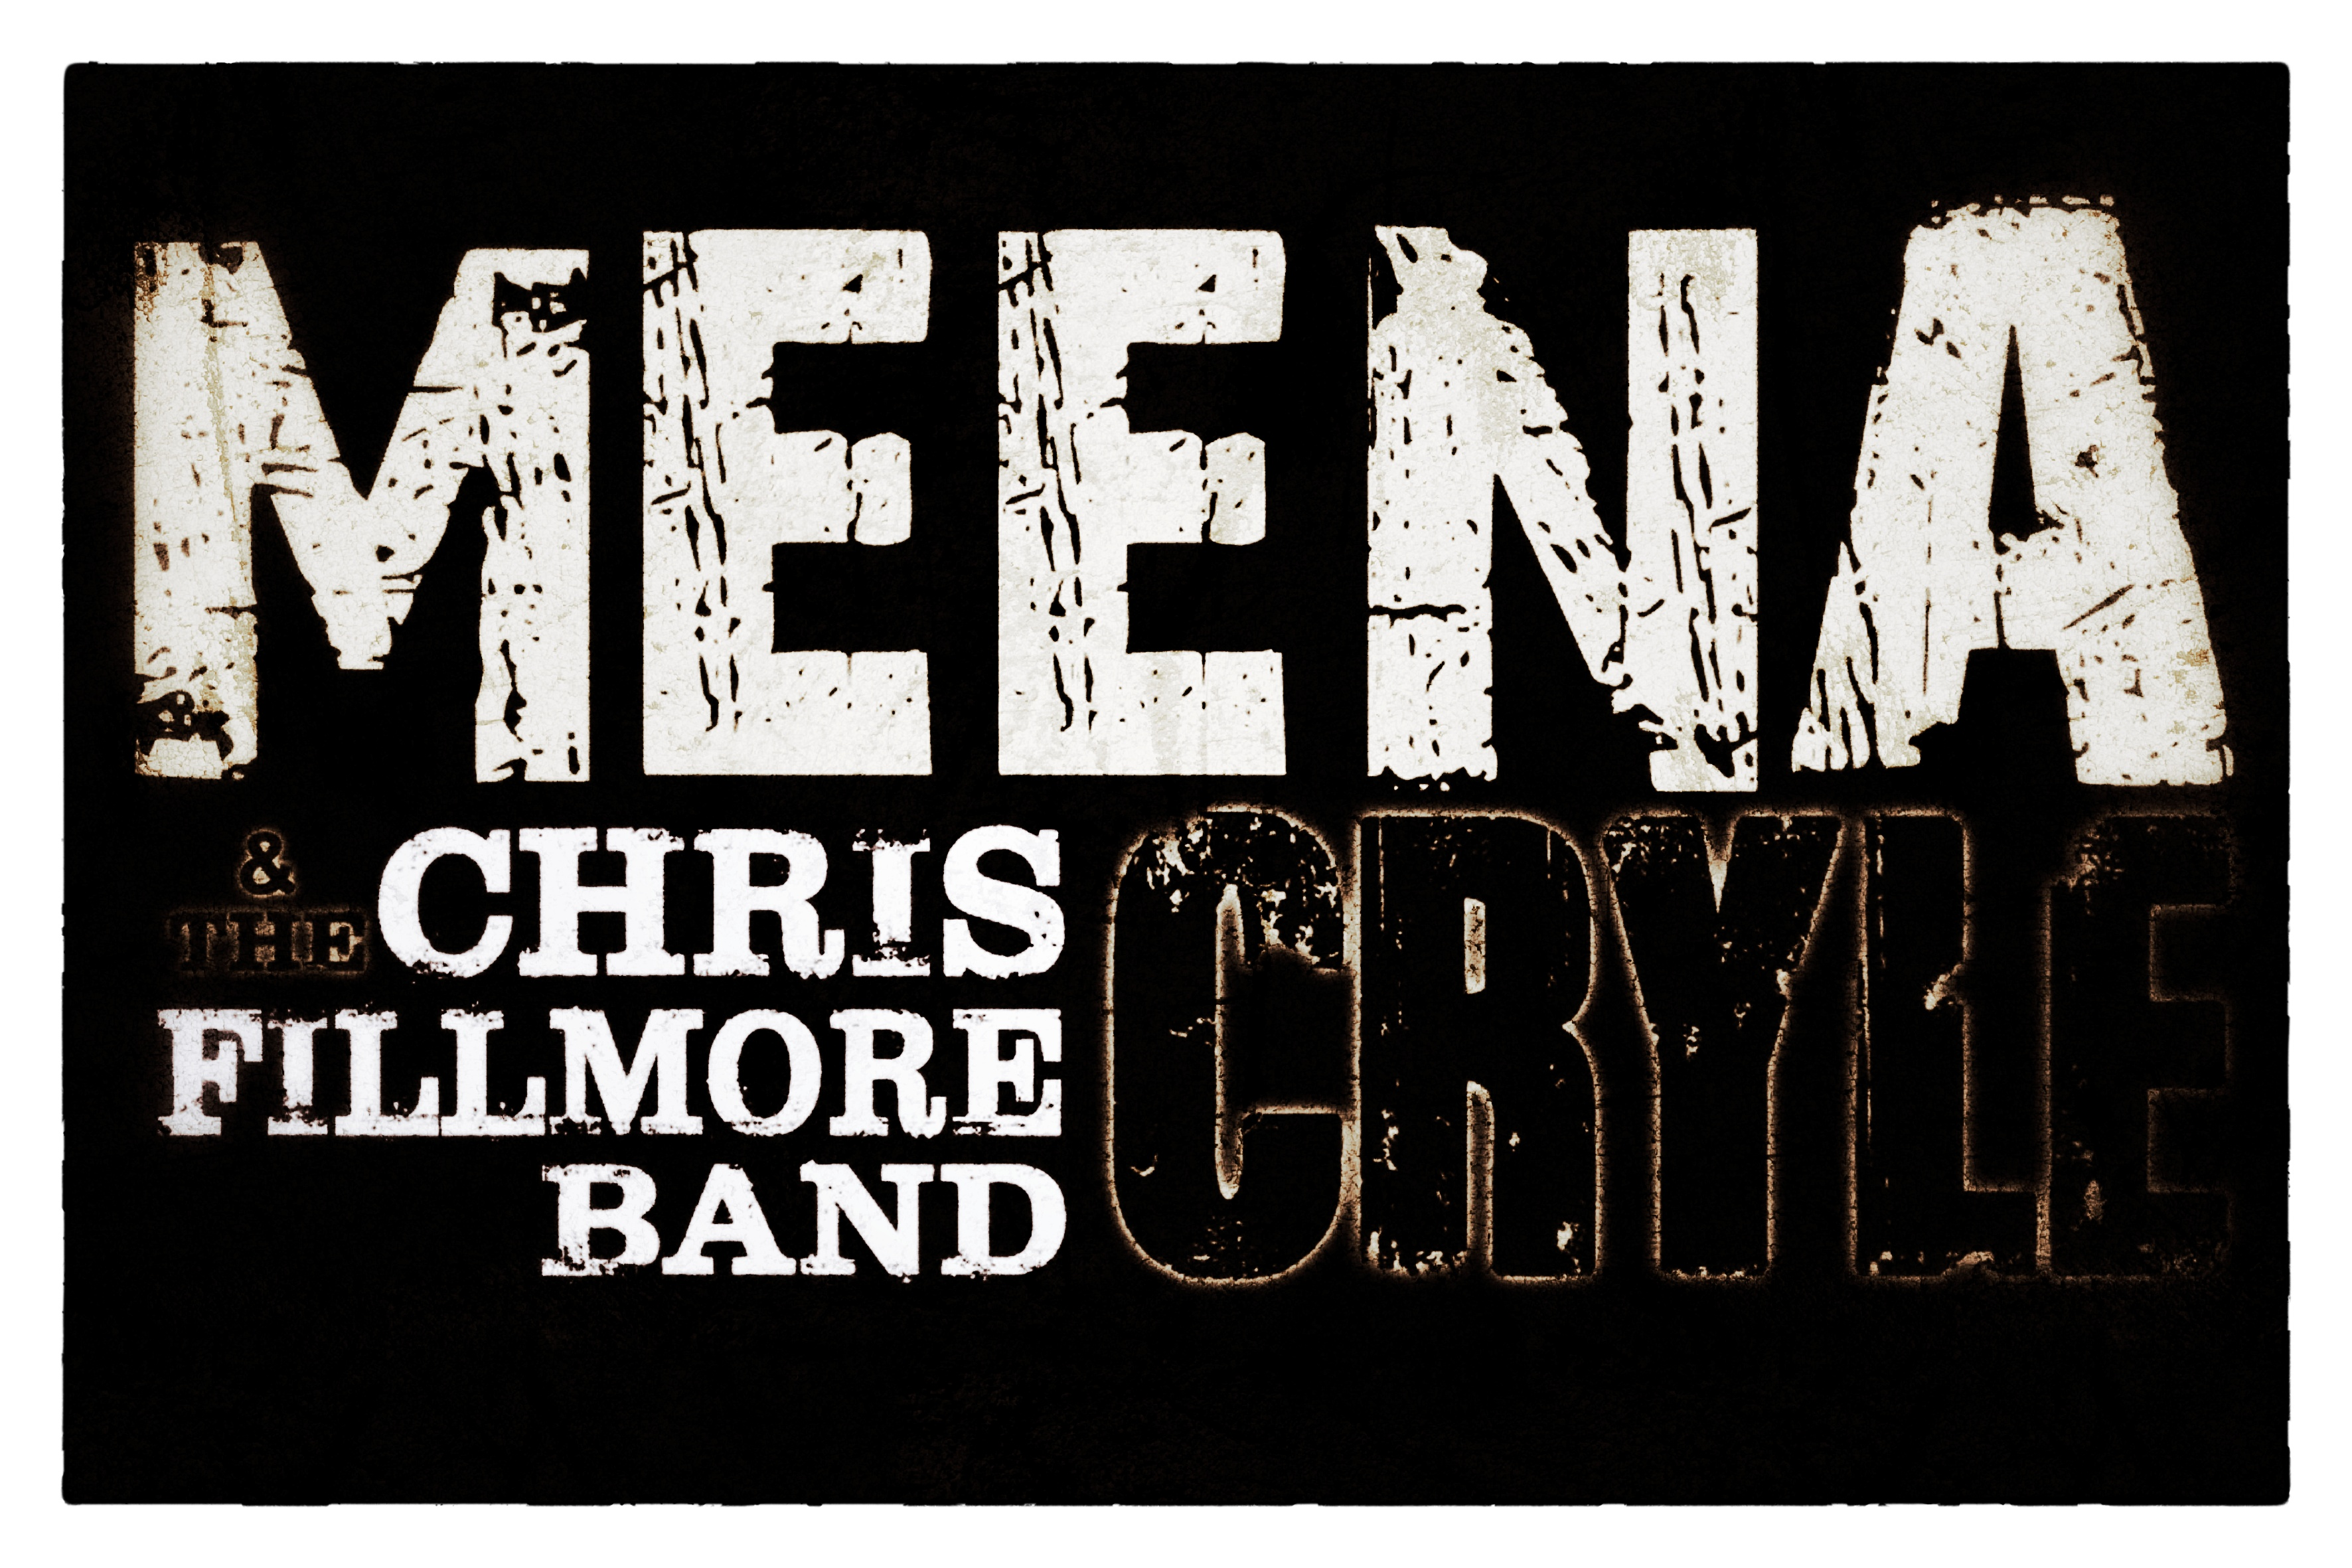 Meena Cryle & The Chris Fillmore Band